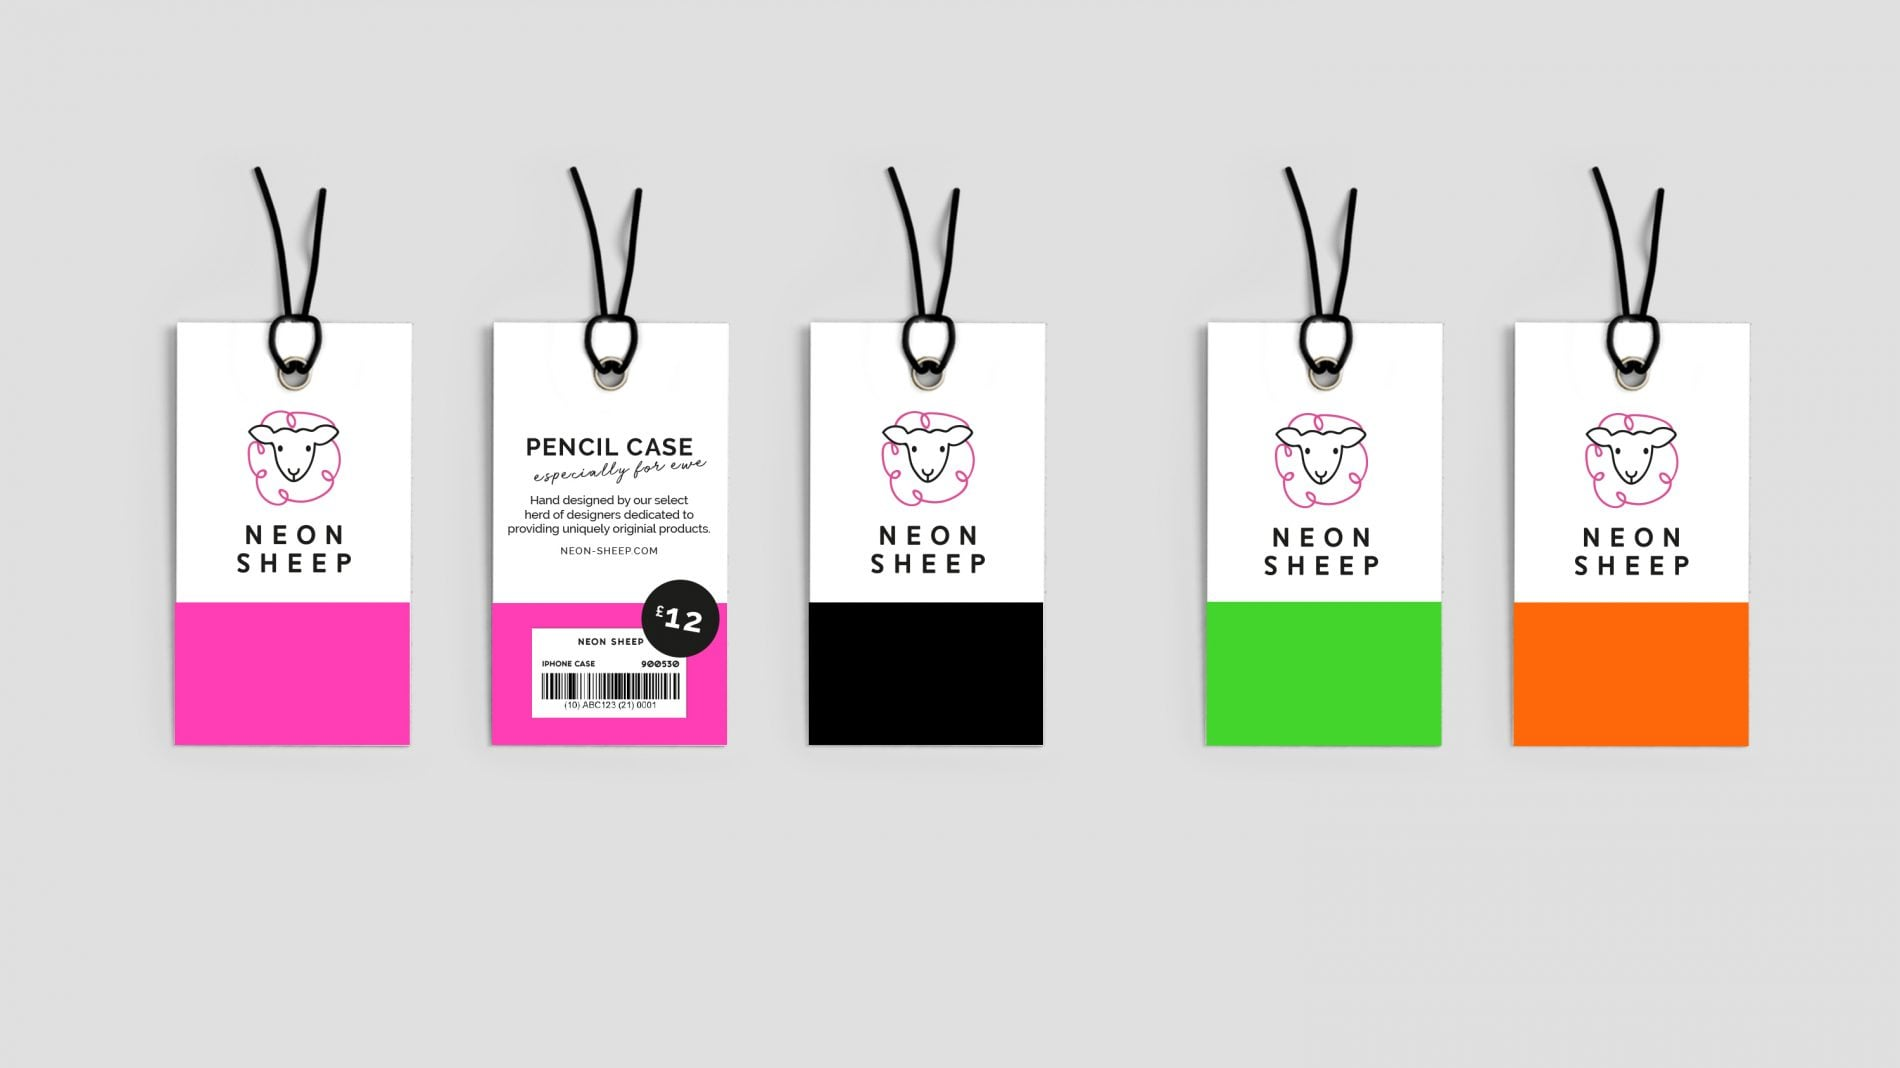 Flat-lay of 5 Neon Sheep product tags